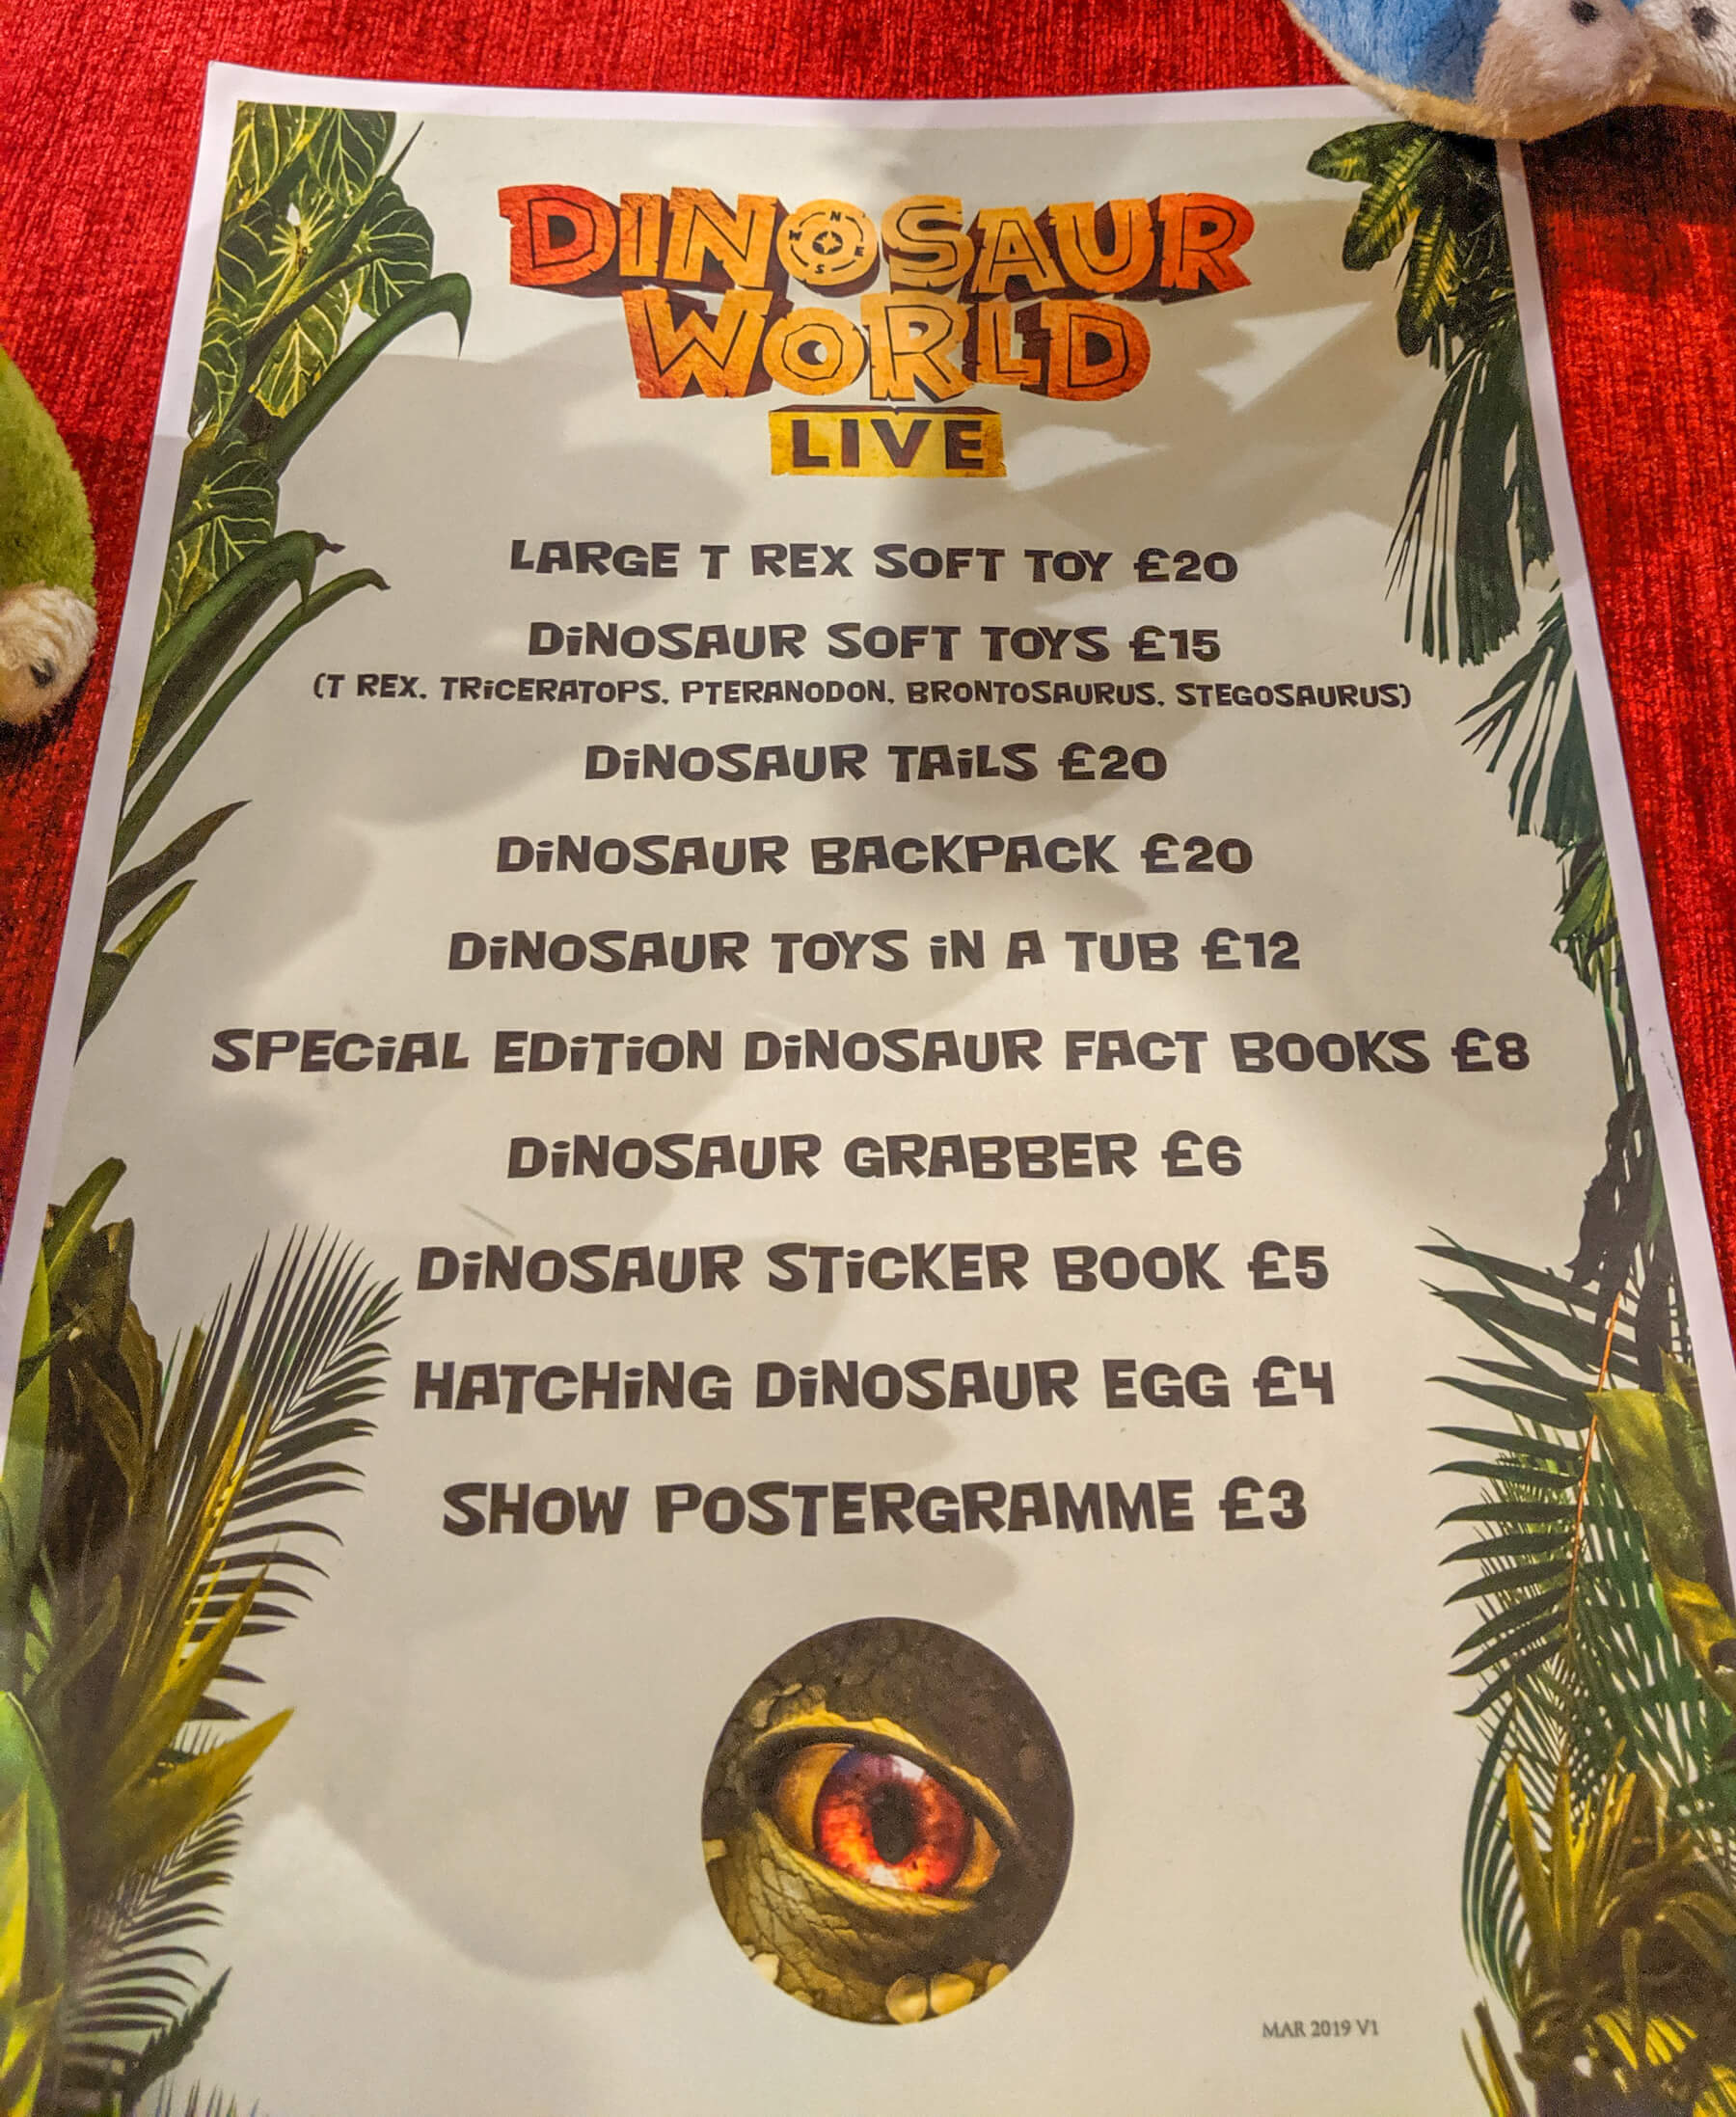 price list of merchandise at Dinosaur World Live